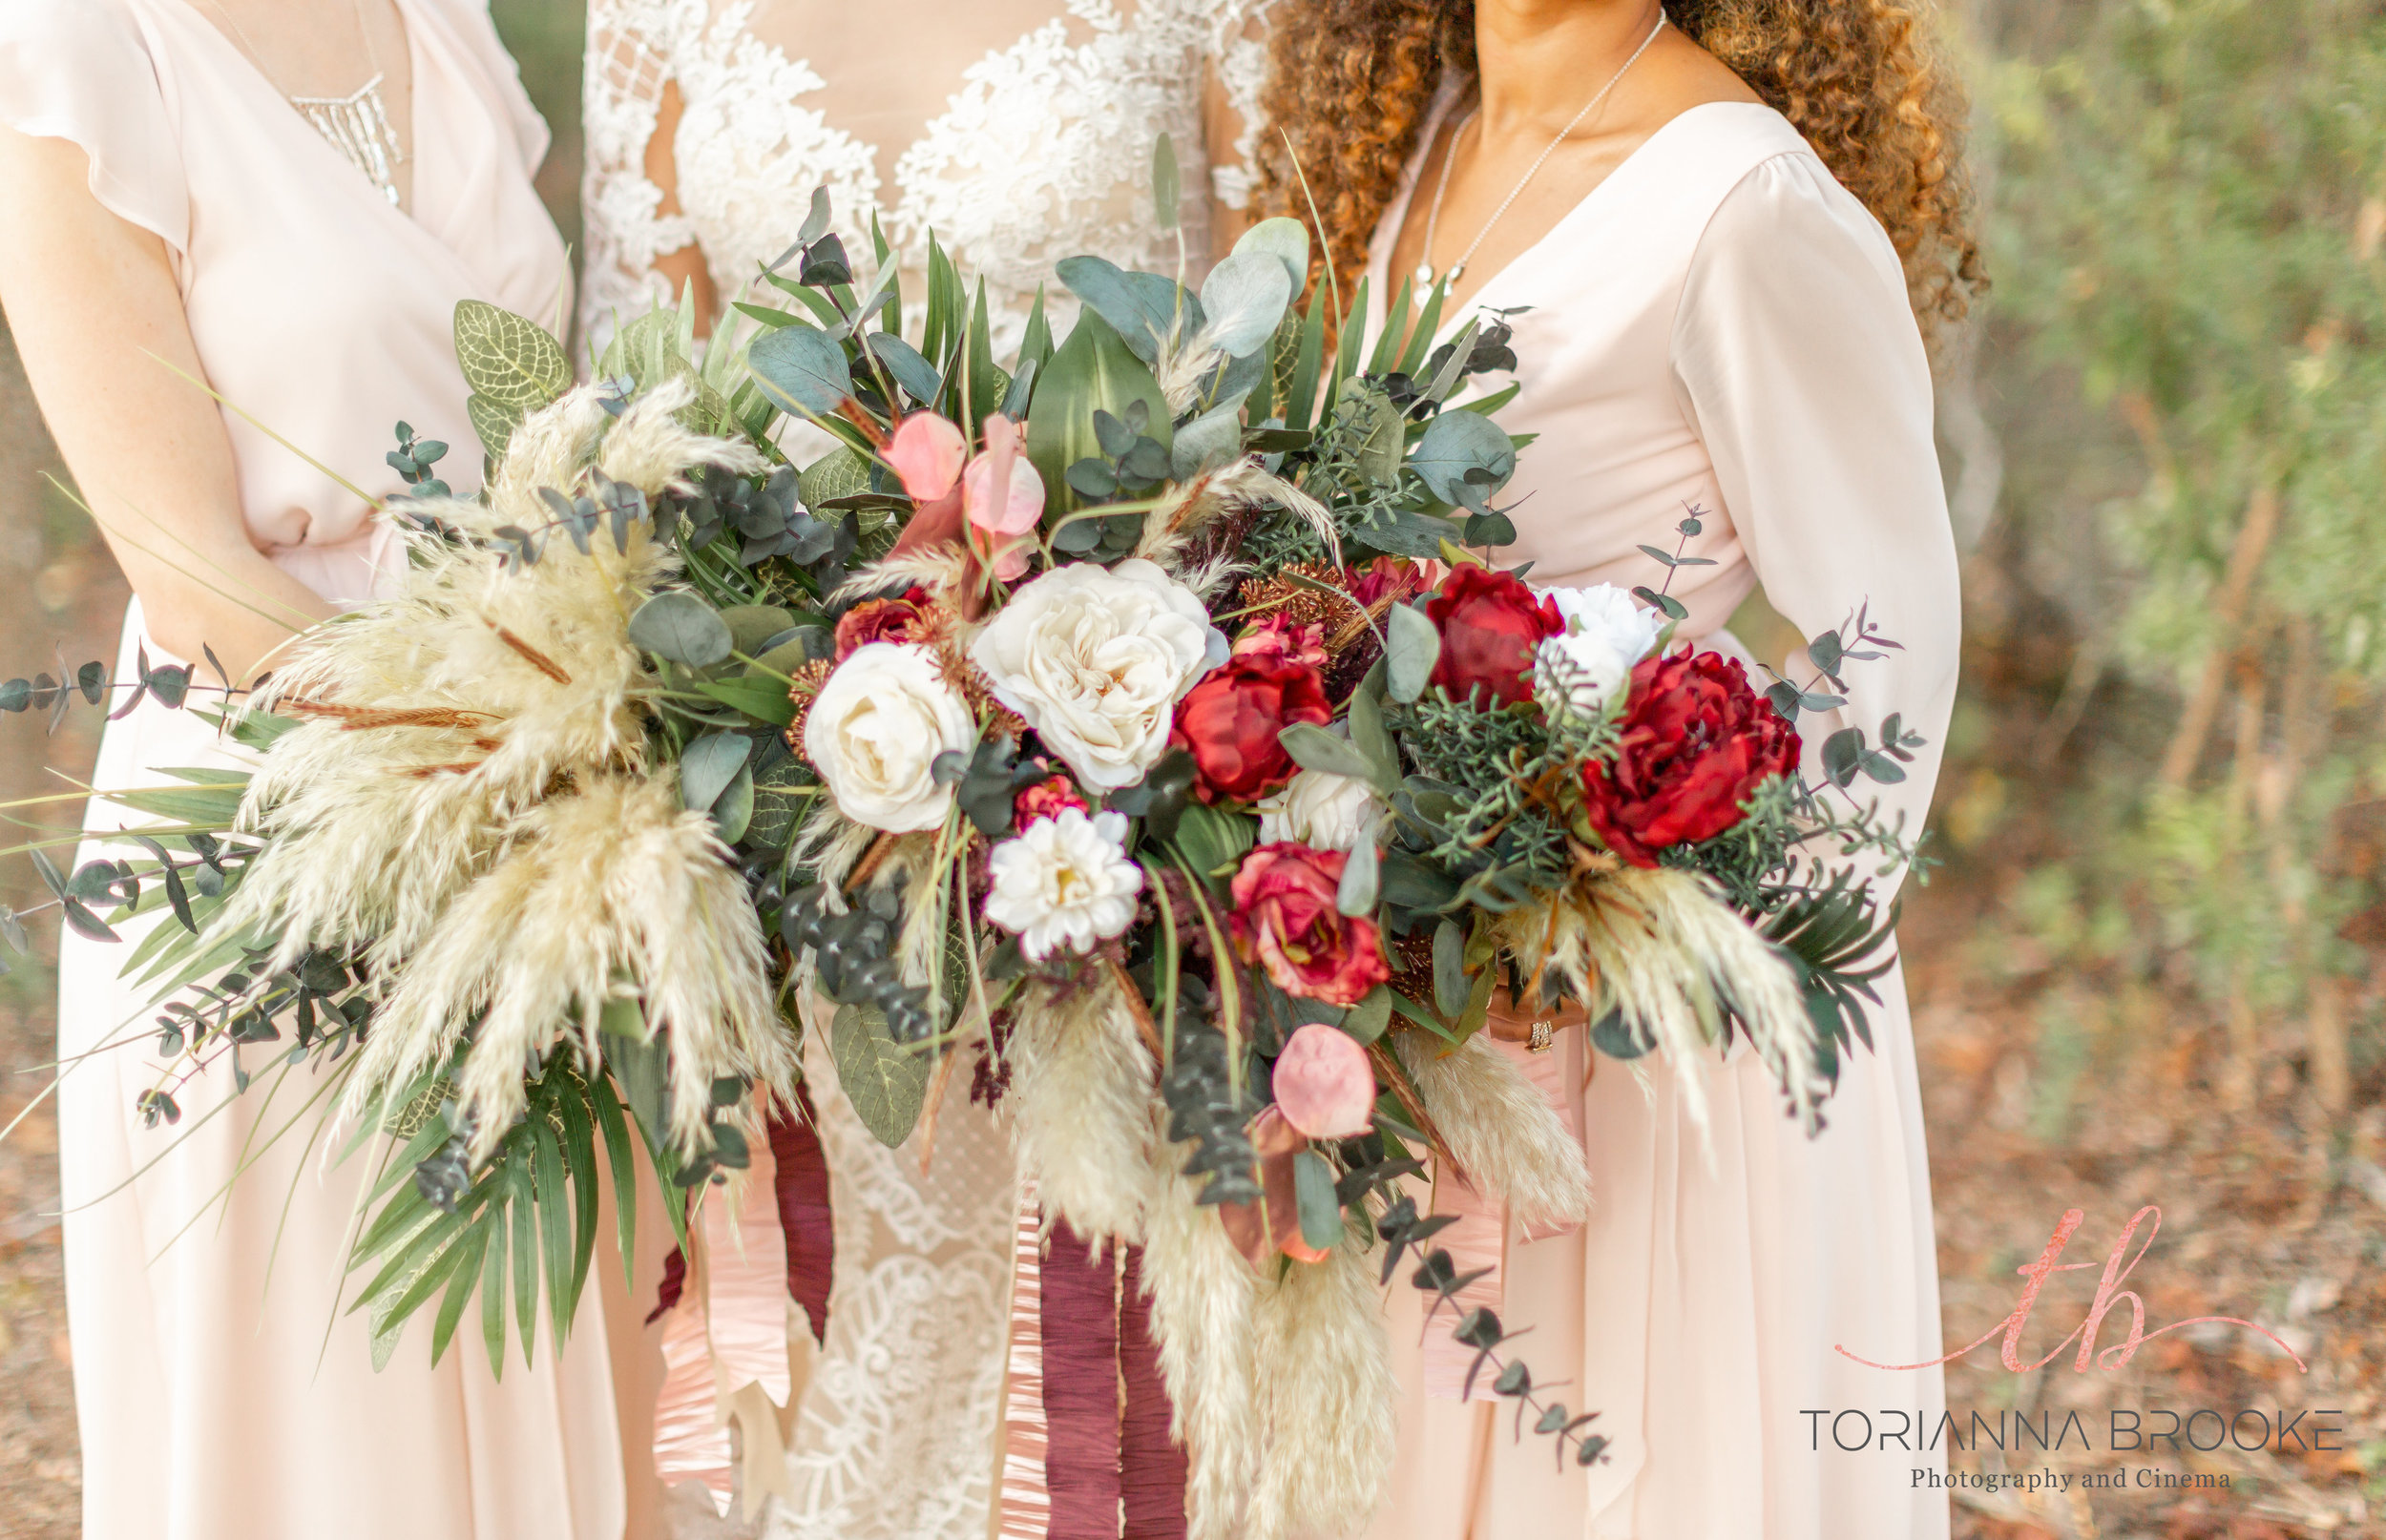 We love how wild and fun these bouquets are!